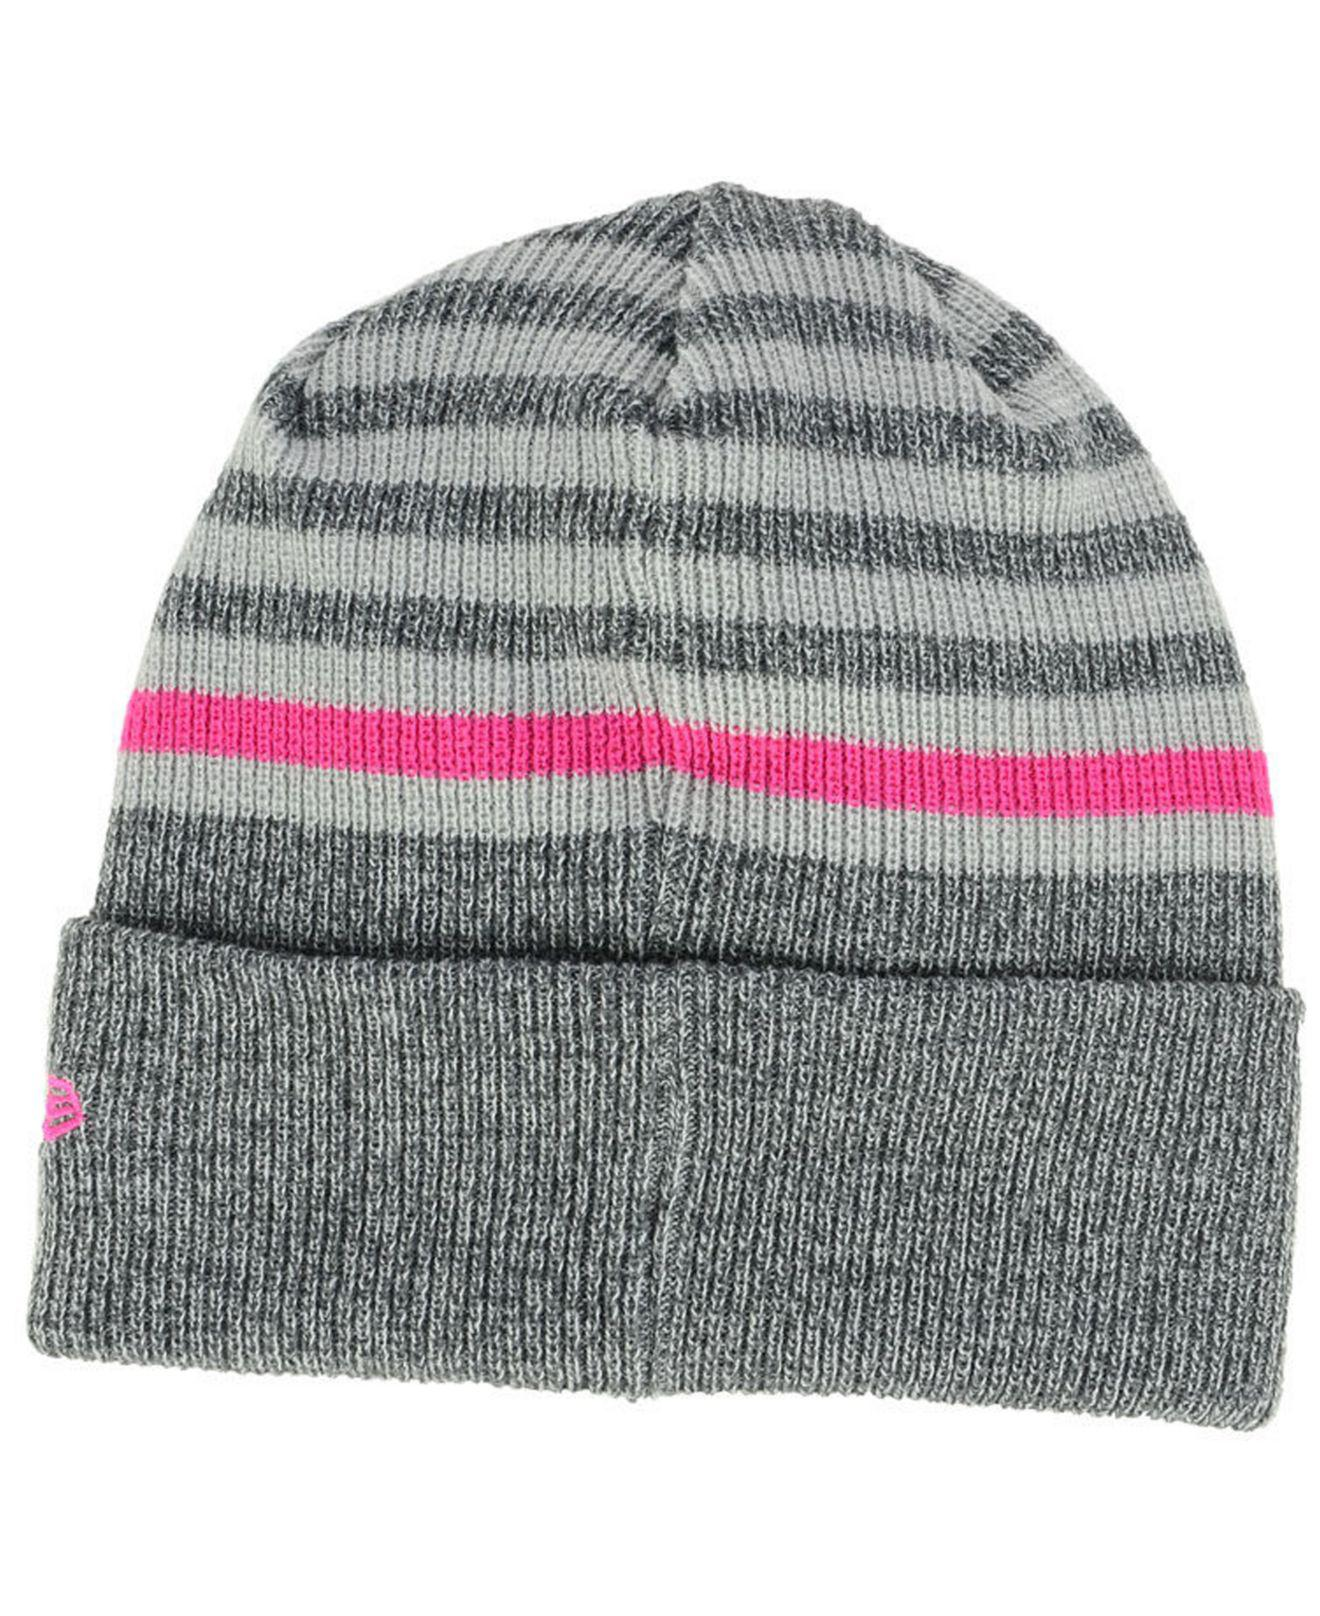 50041b4d204 ... ireland lyst ktz charlotte hornets striped cuff knit hat in gray for  men fe3bc 2cef0